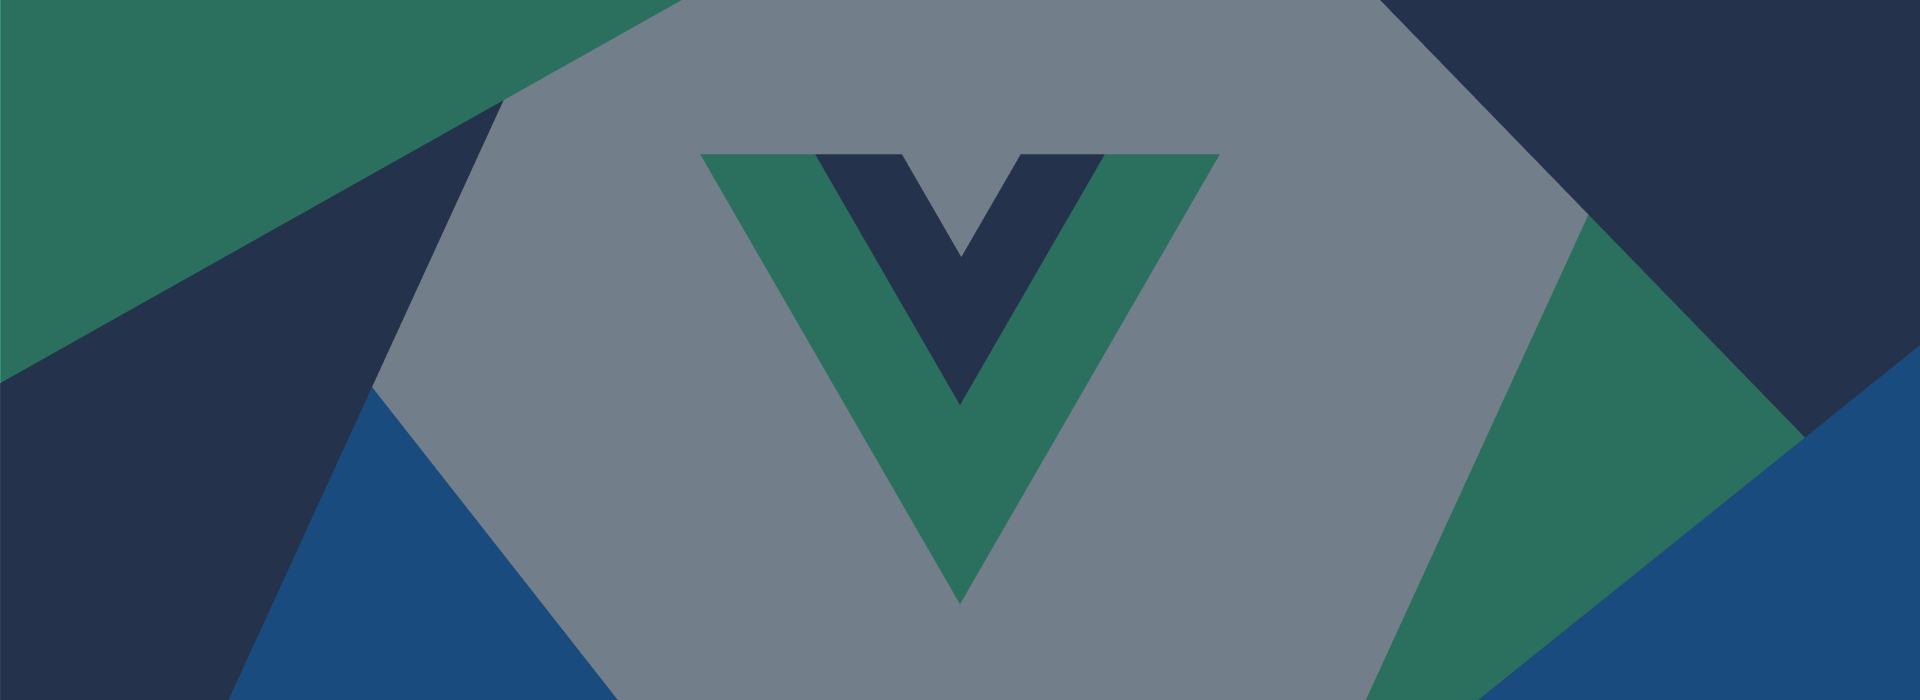 How to build a SPA with Vue.js